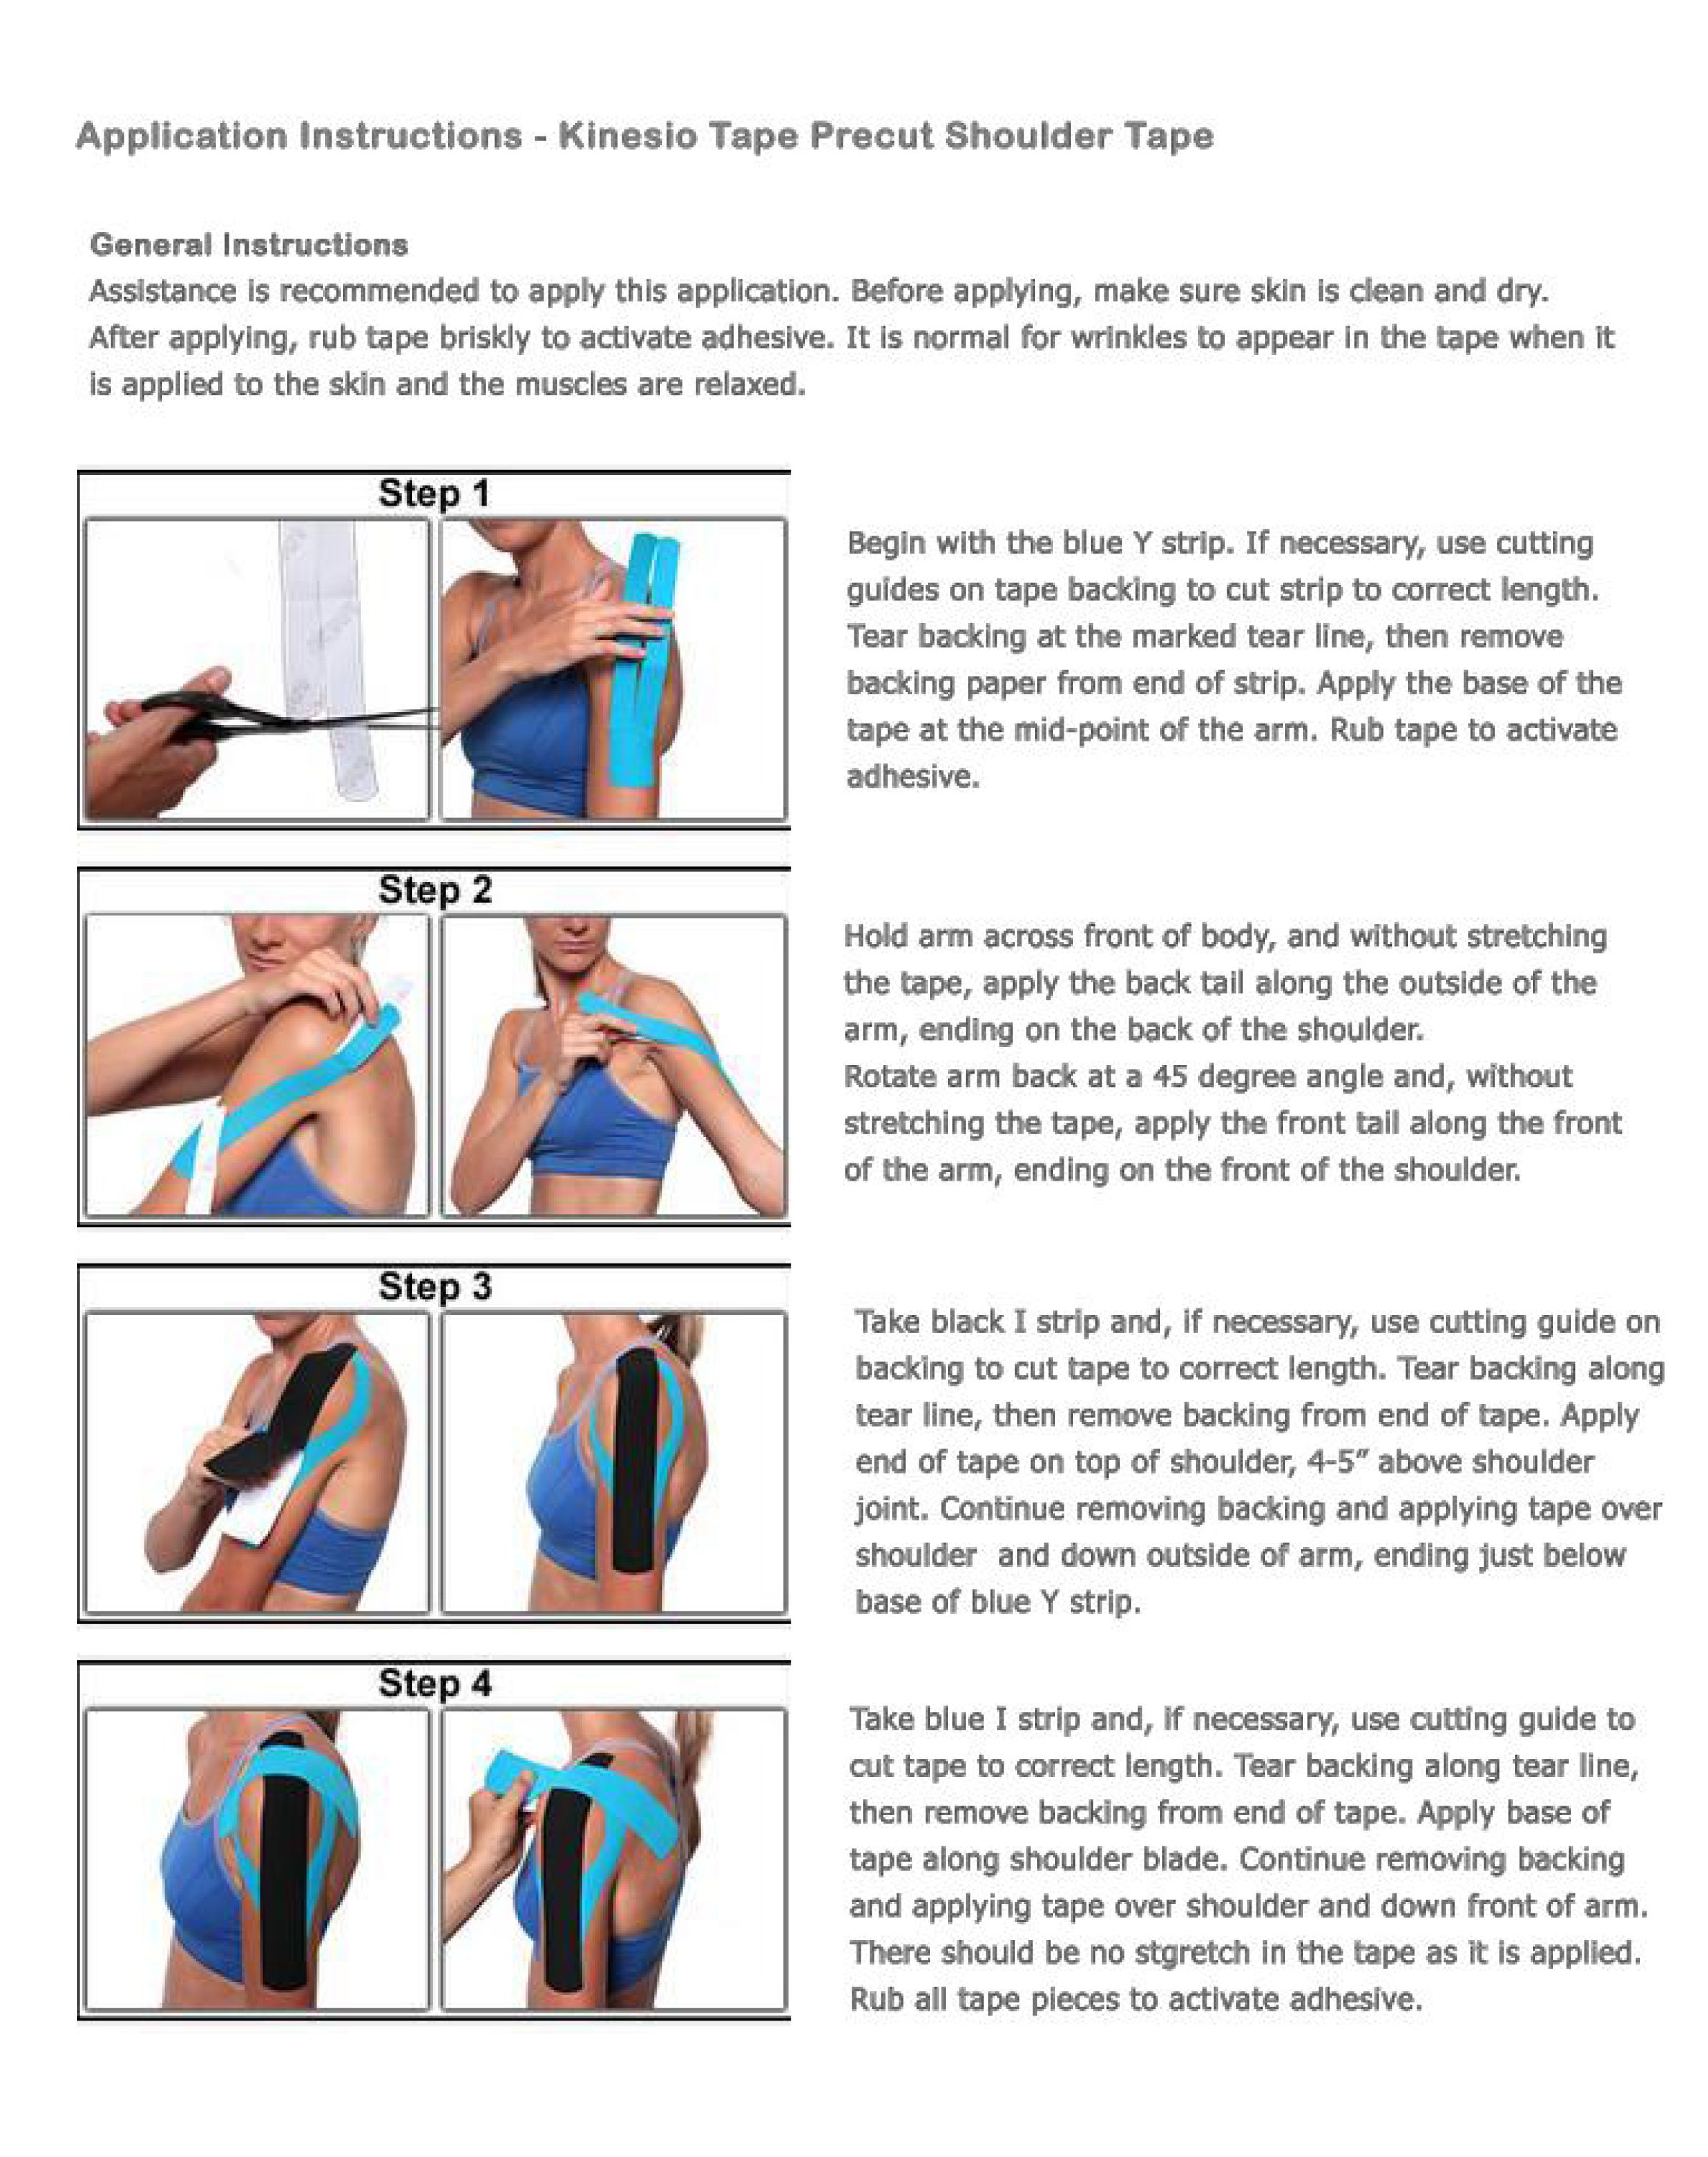 Simple Kinesiology Tape Instructions For Shoulder Kinesiology Tape